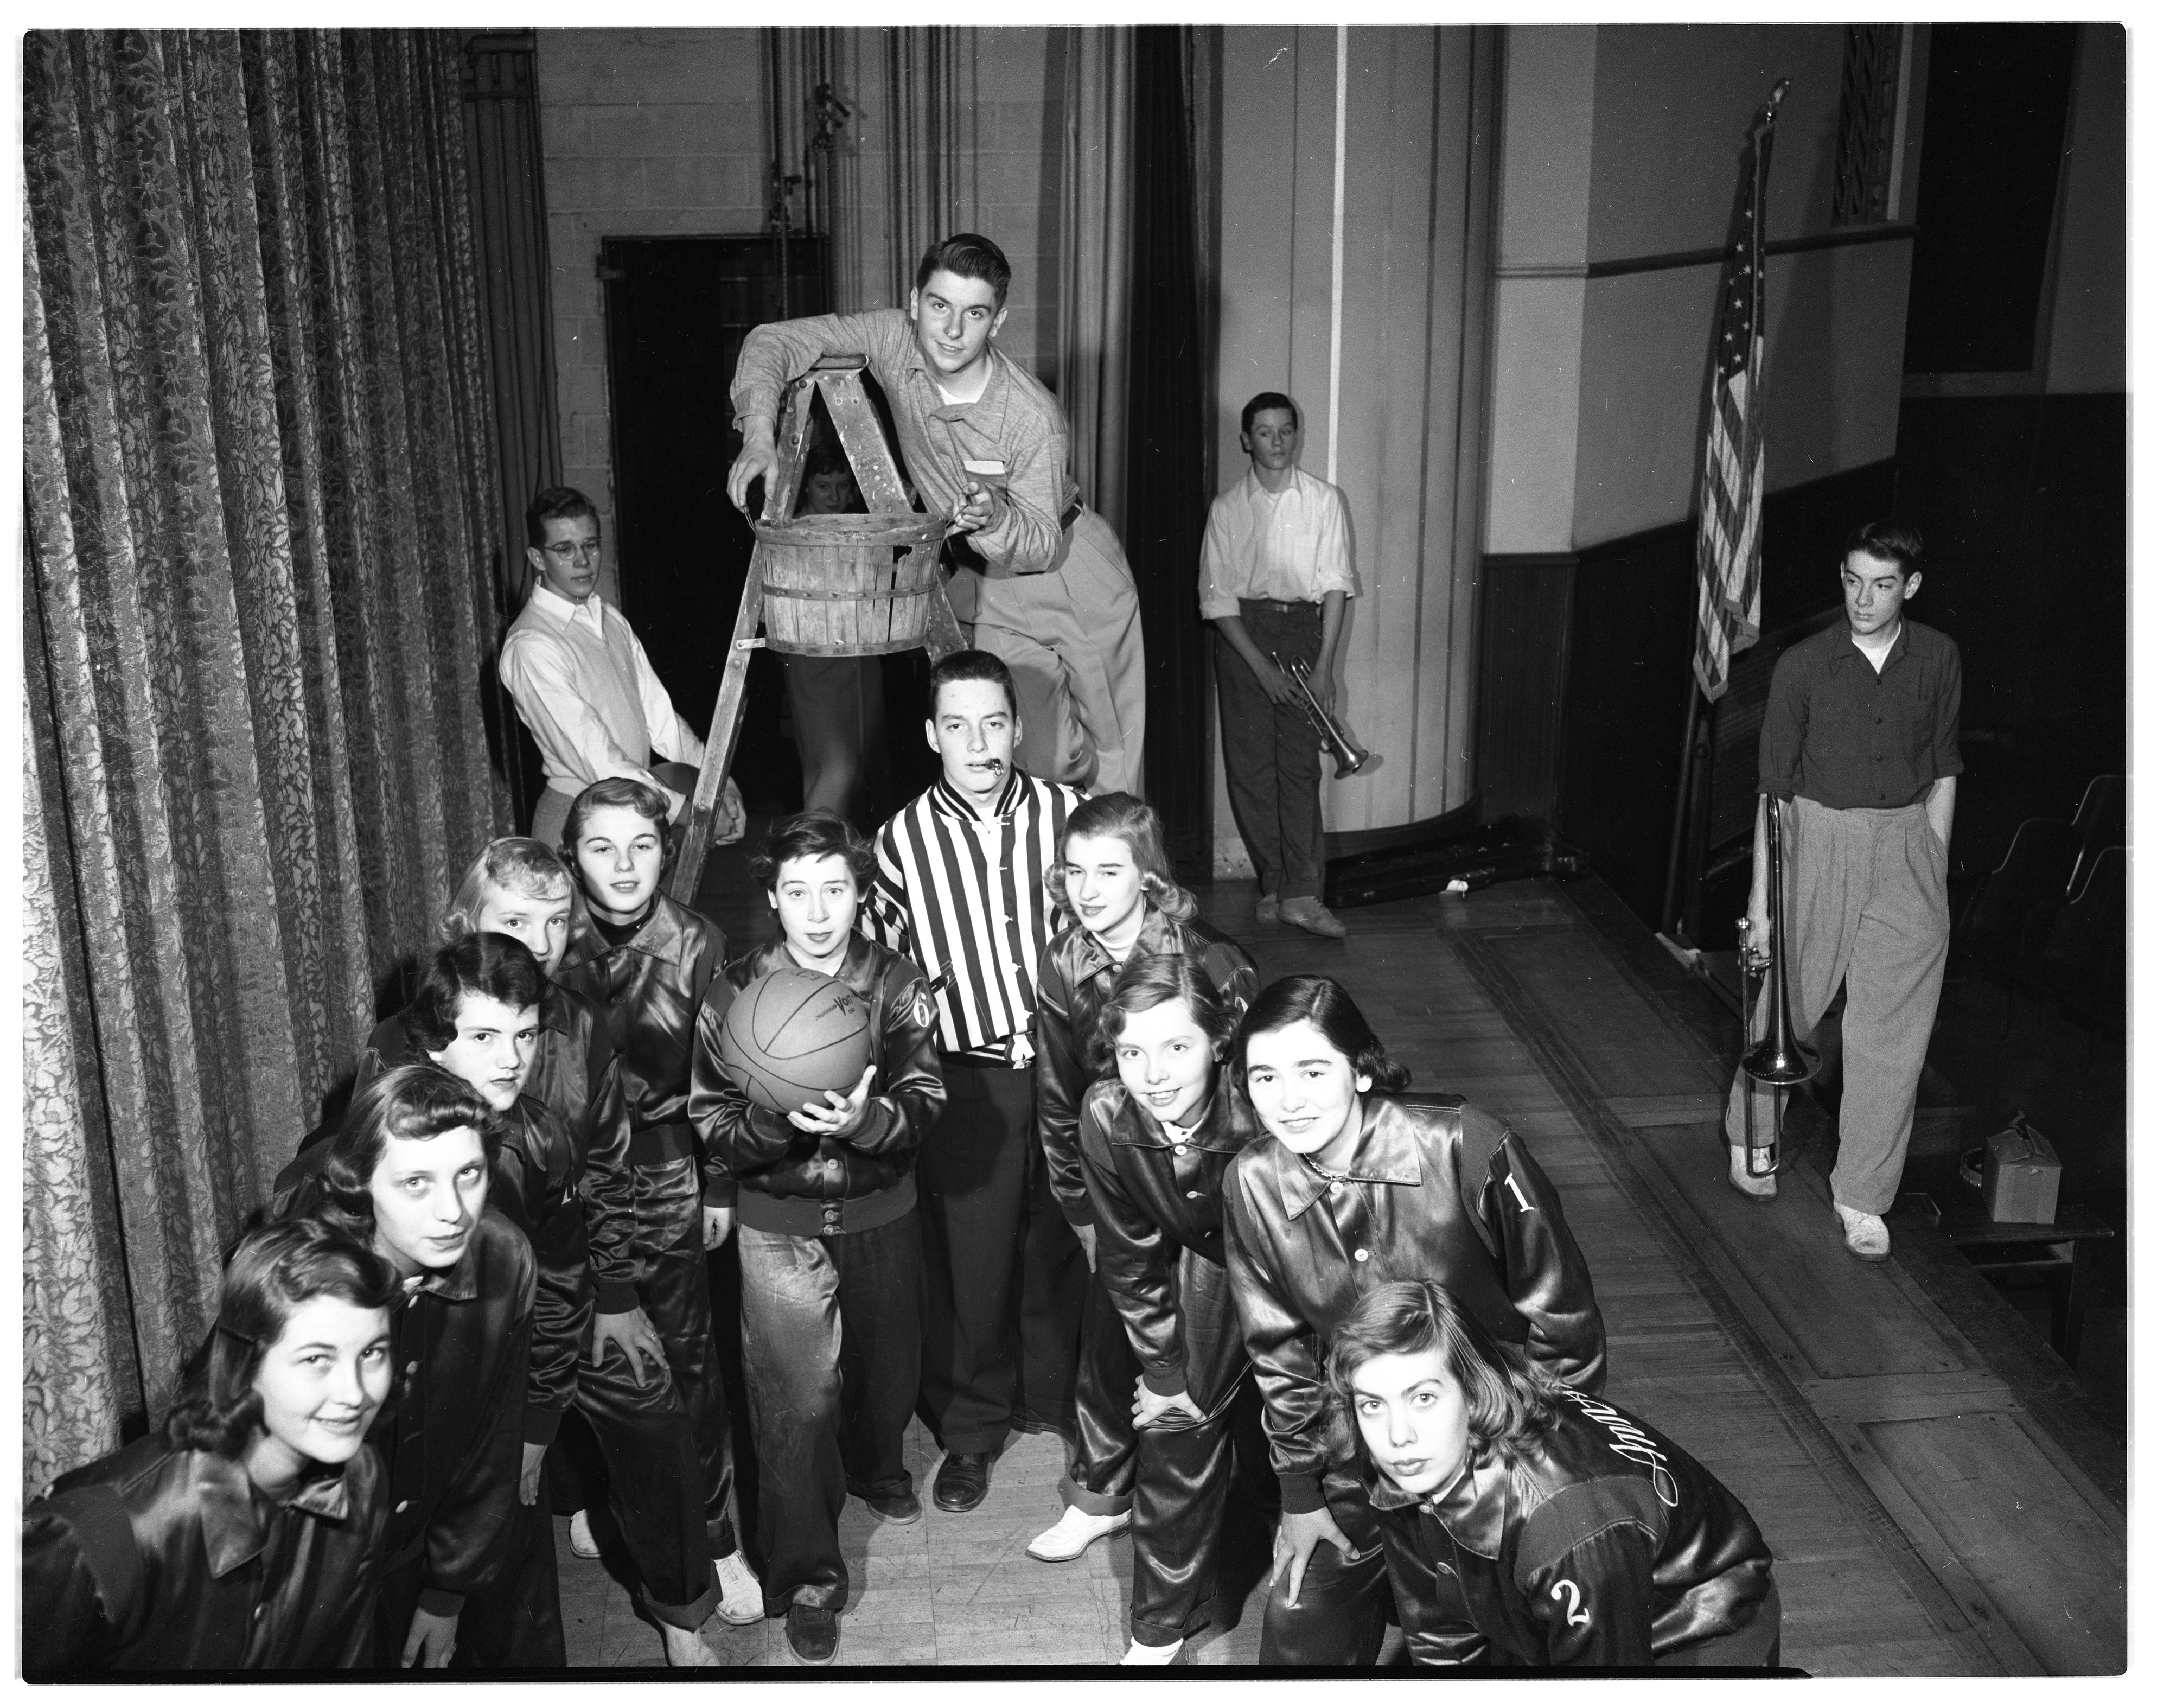 Ann Arbor High School Student Skit Promotes School Millage, February 1953 image